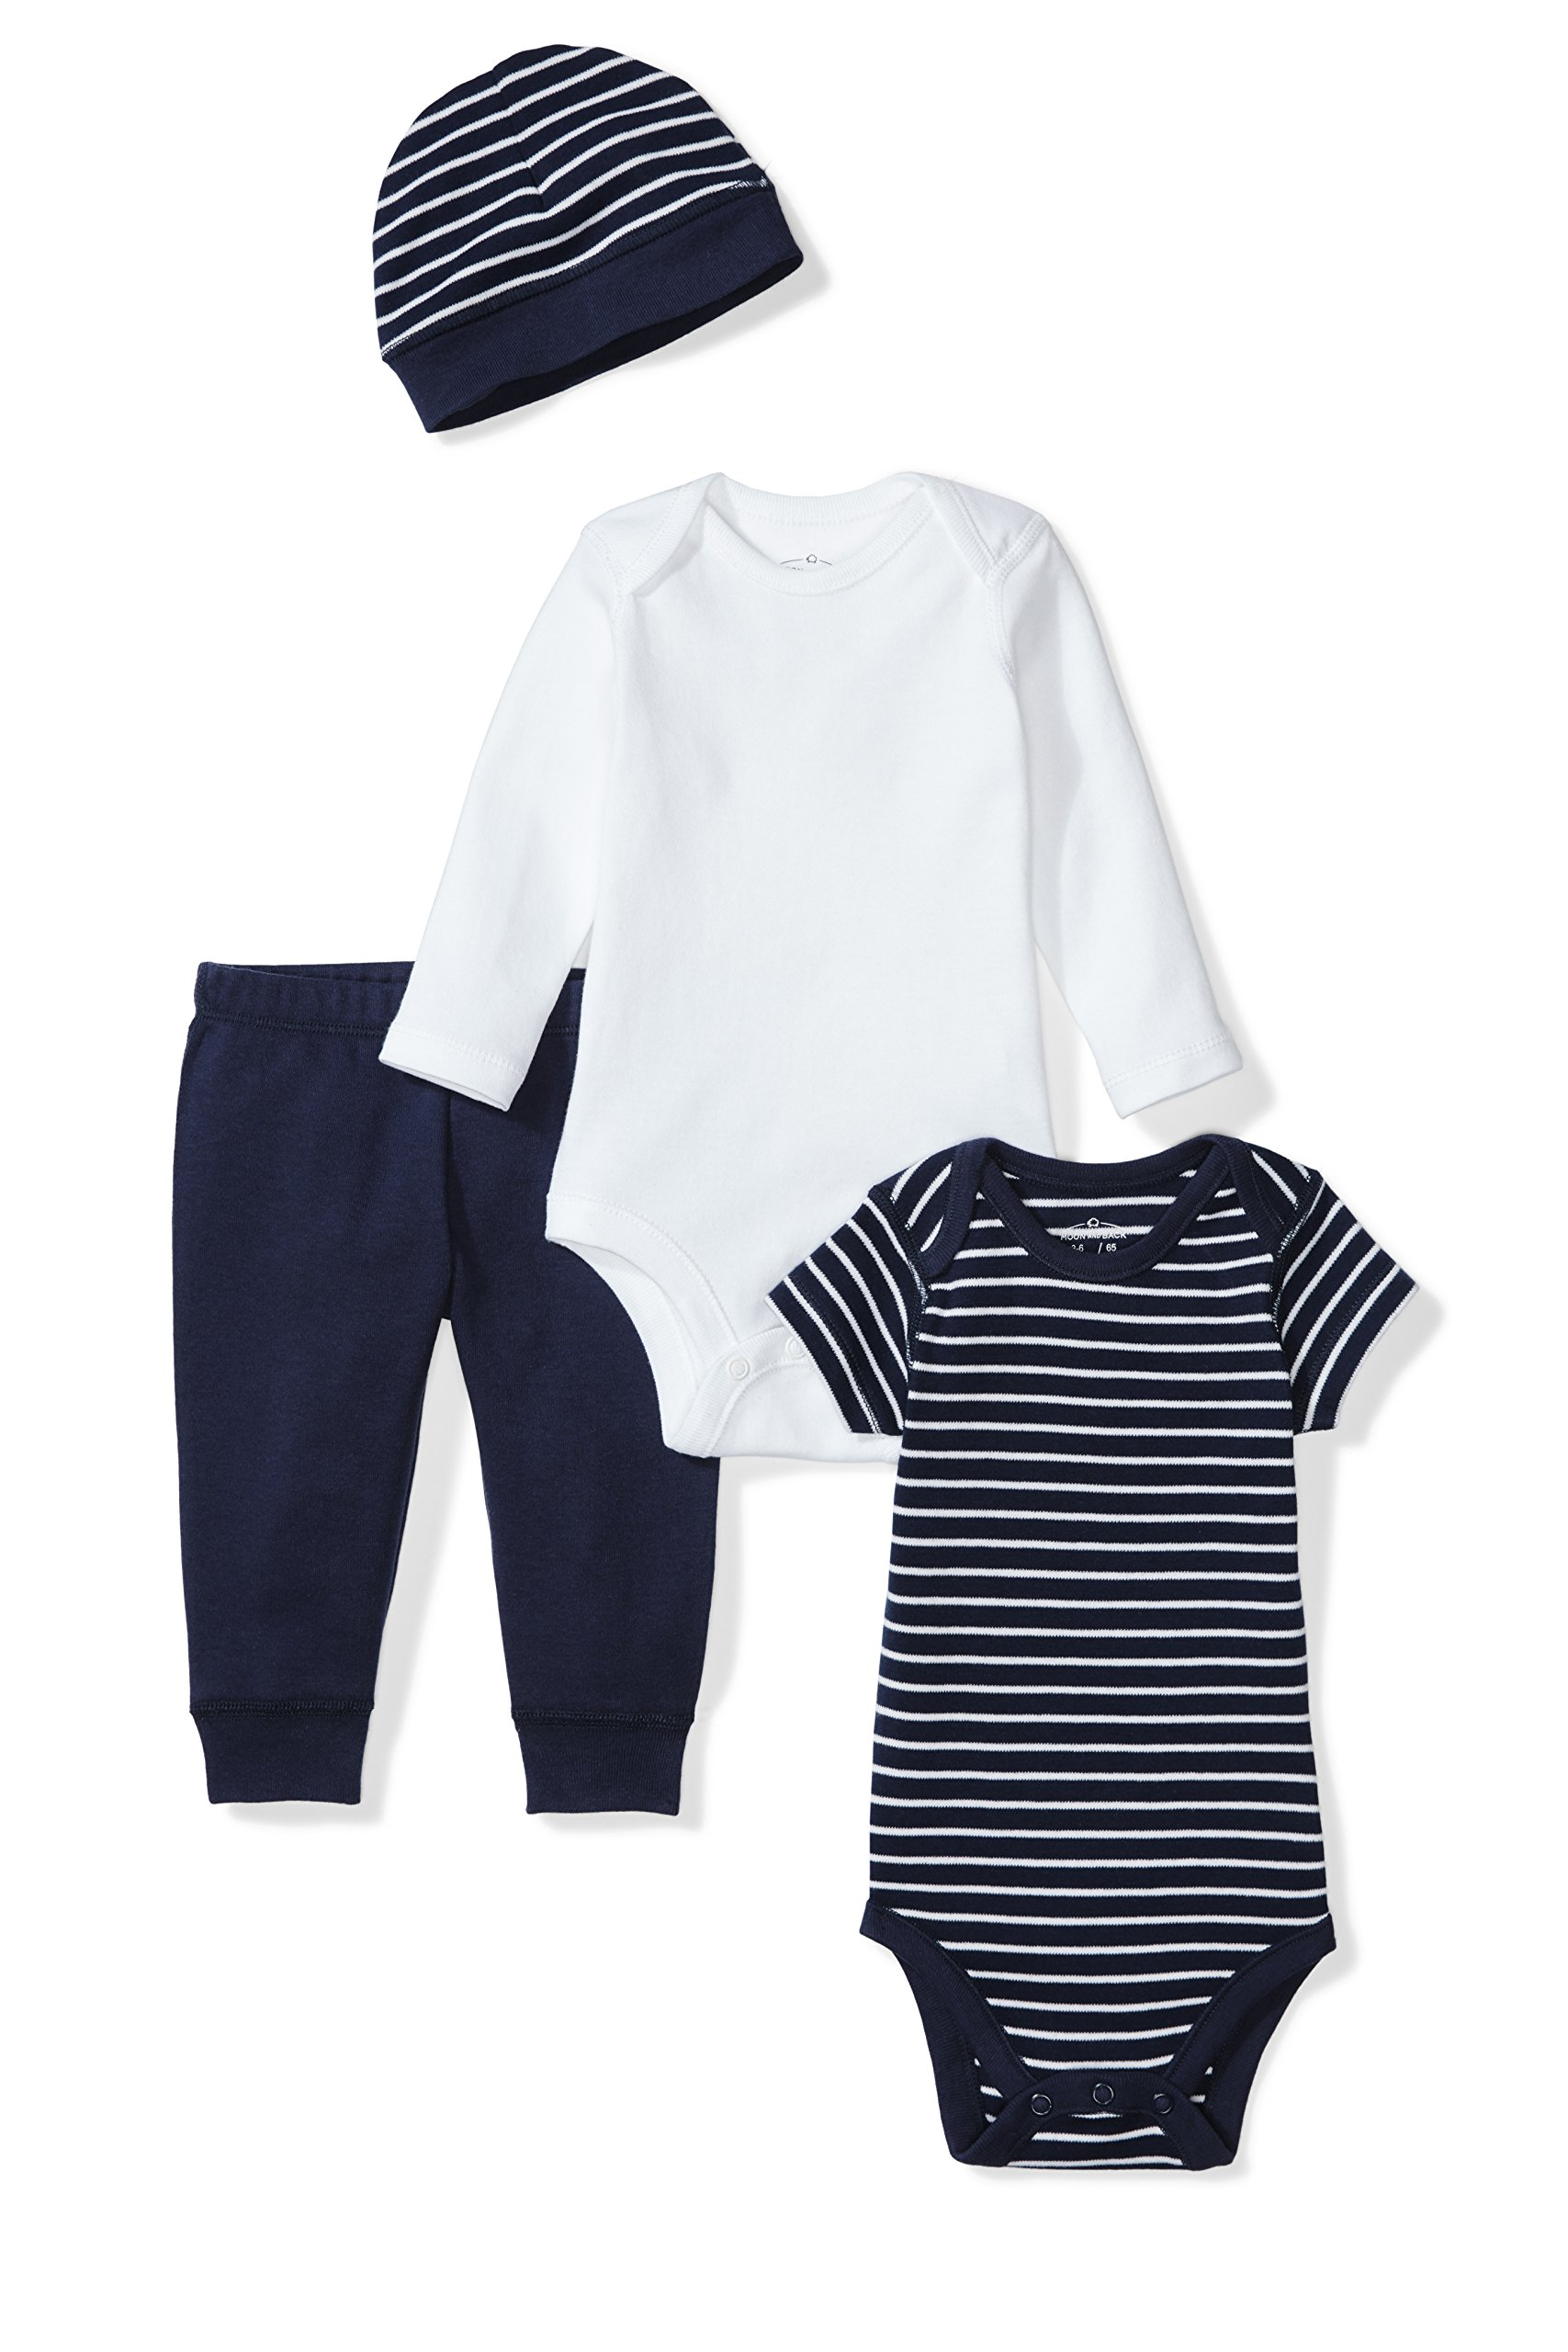 Moon and Back Baby 4 Piece Organic Playtime Gift Set, Navy Sea, 0-3 Months